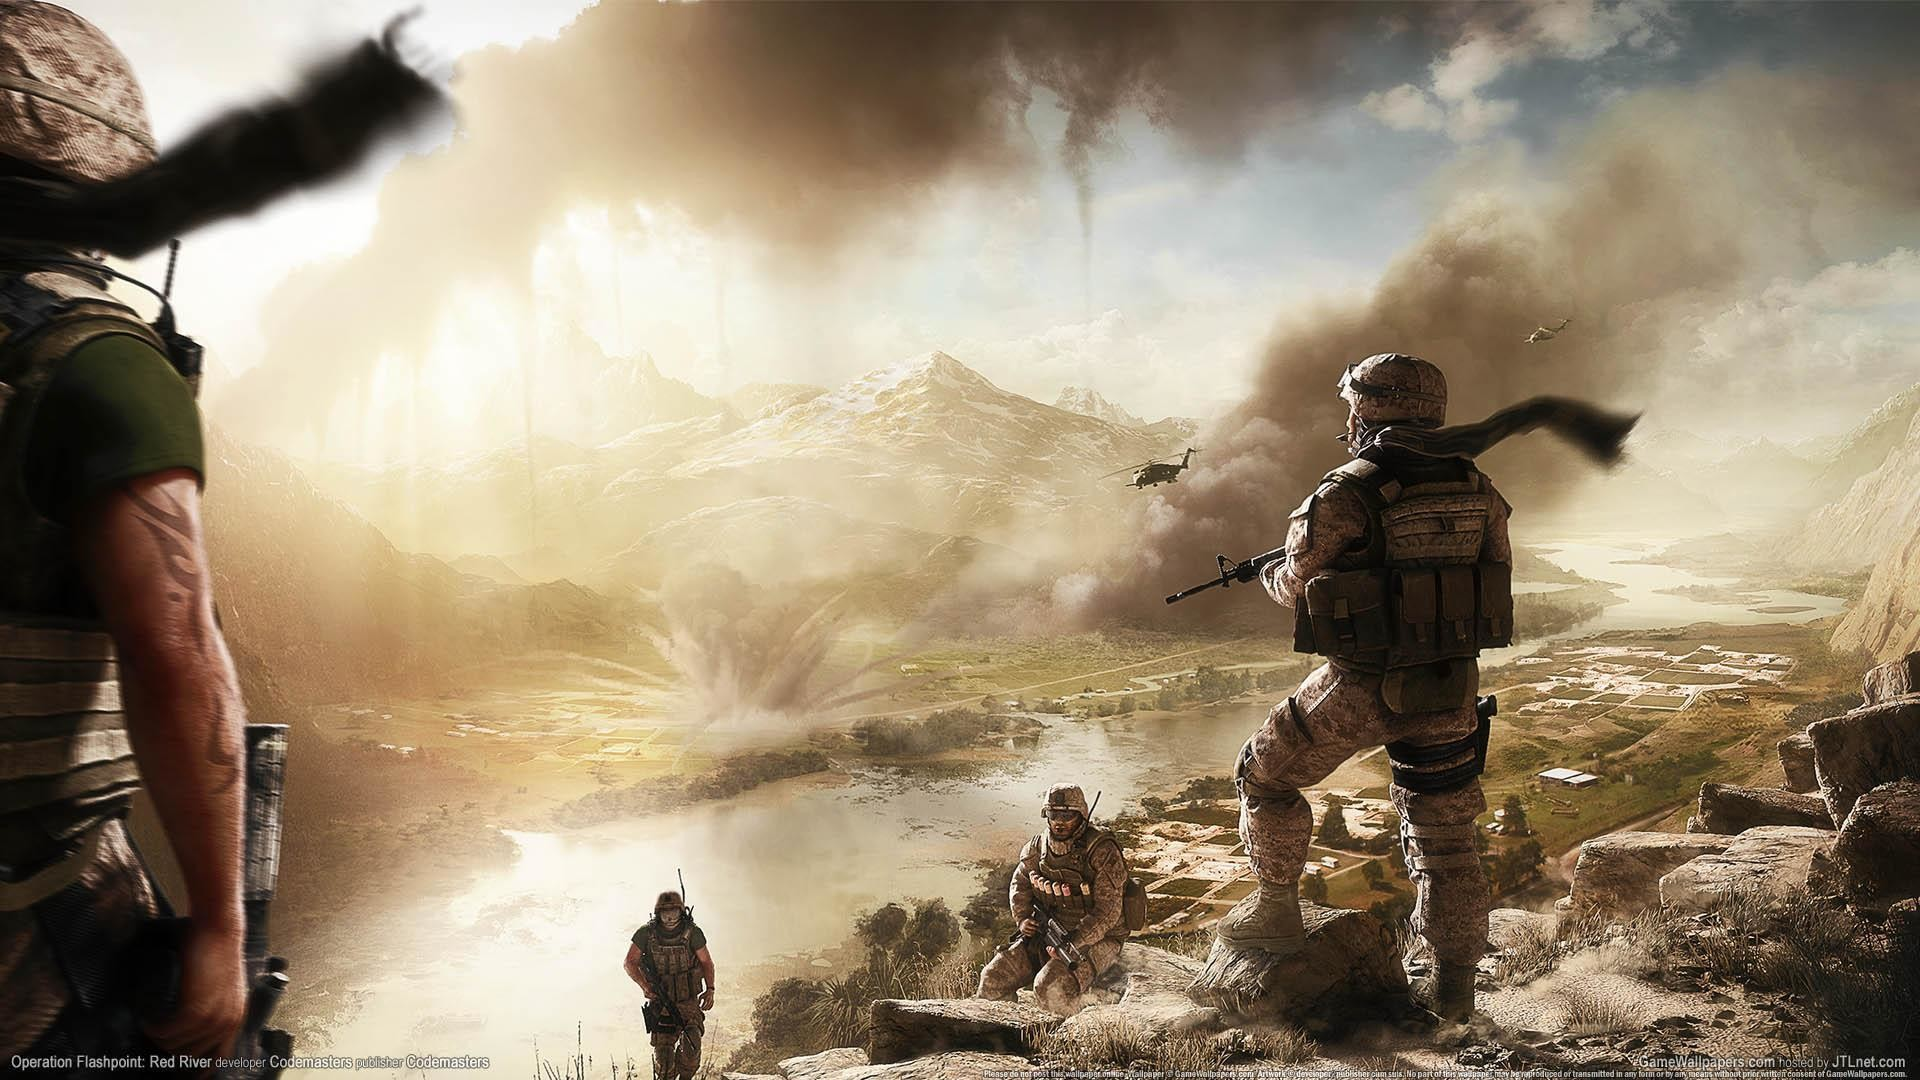 Res: 1920x1080, Wallpapers For > Army Ranger Wallpaper Iphone